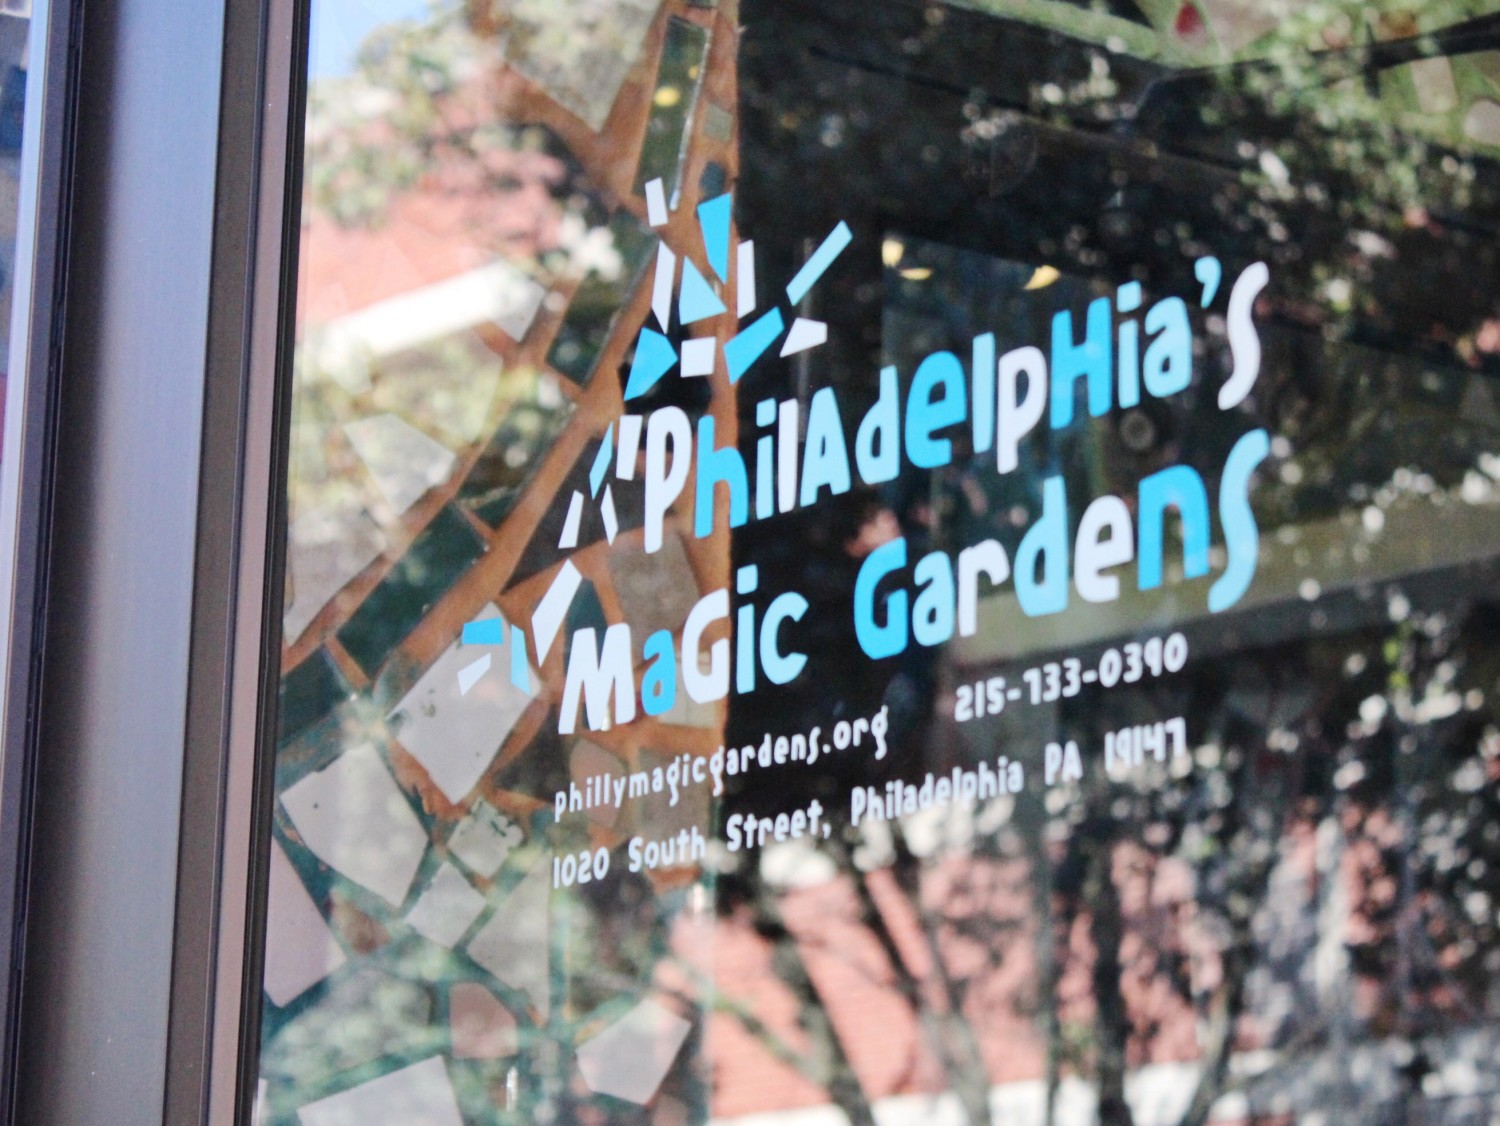 Philadelphia's Magic Gardens Gallery